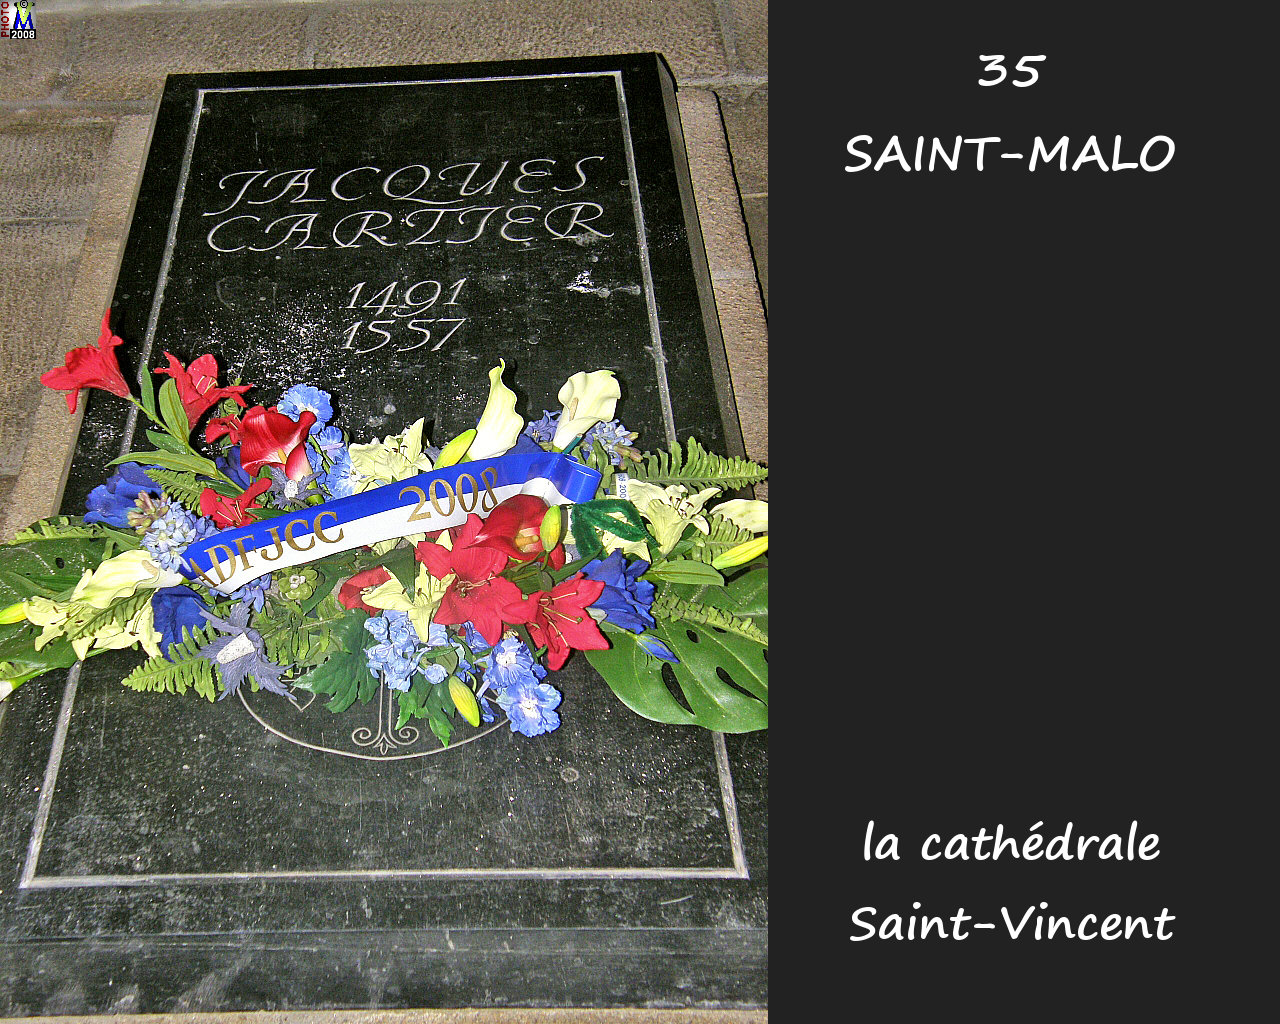 35StMALO_cathedrale_270.jpg